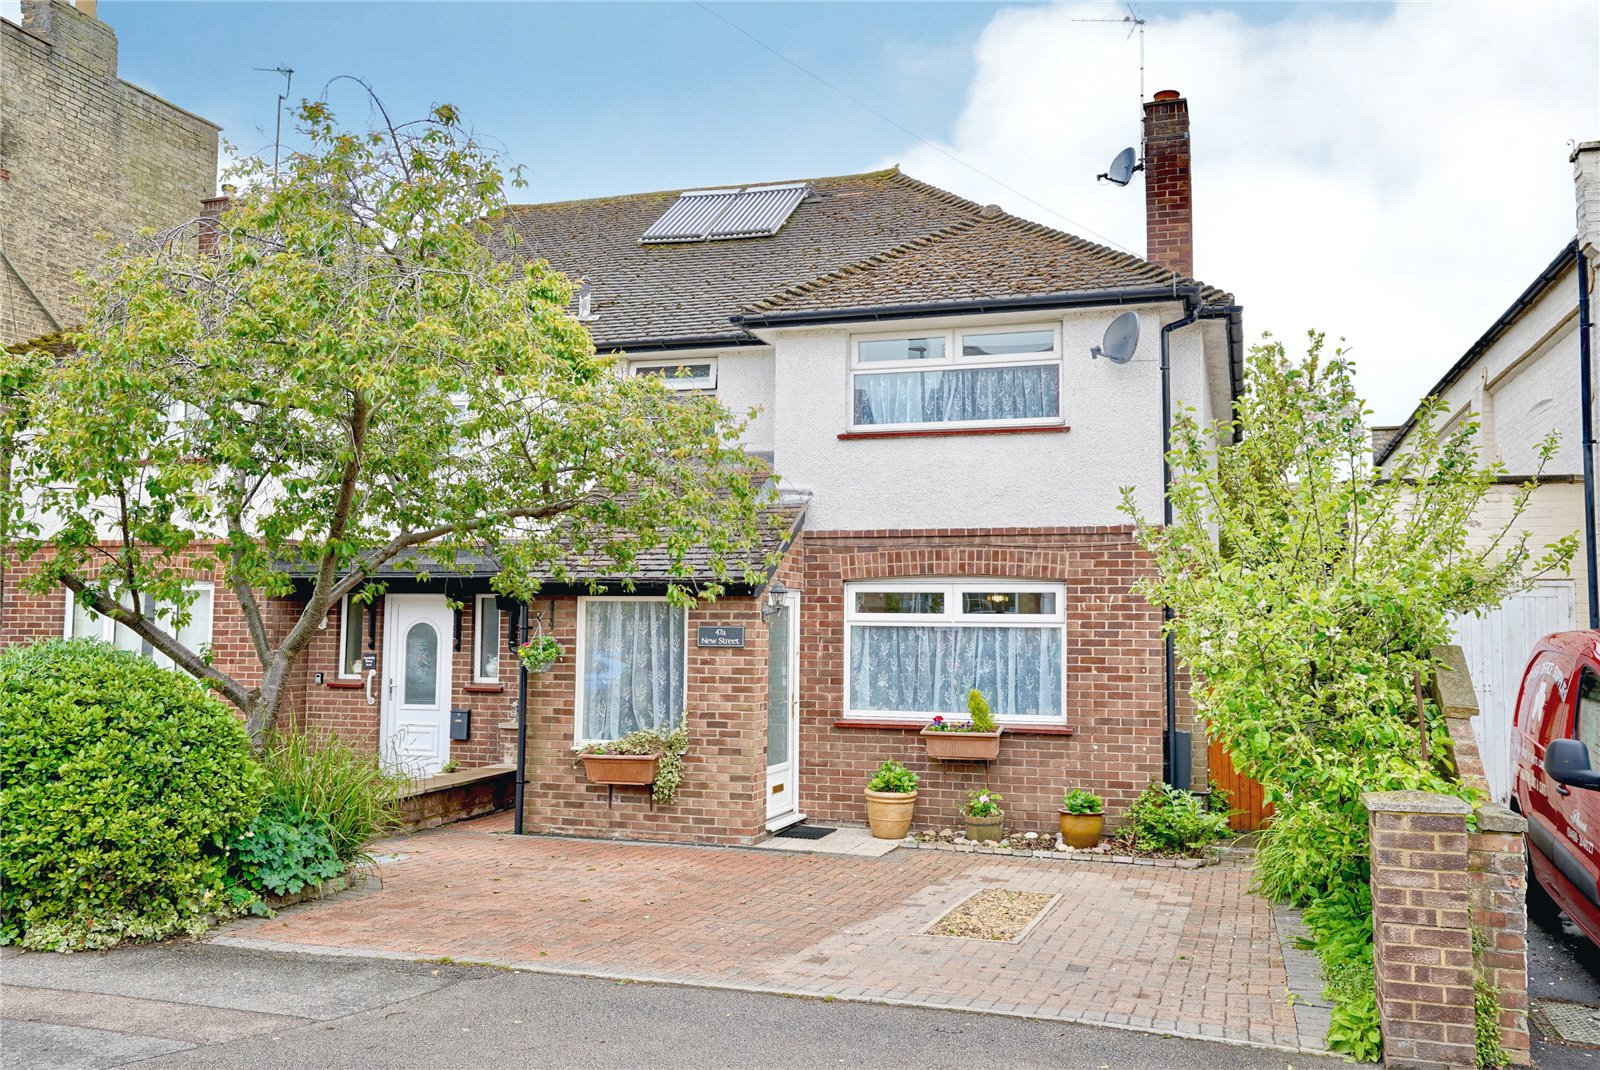 3 bed house for sale in New Street, St. Neots - Property Image 1